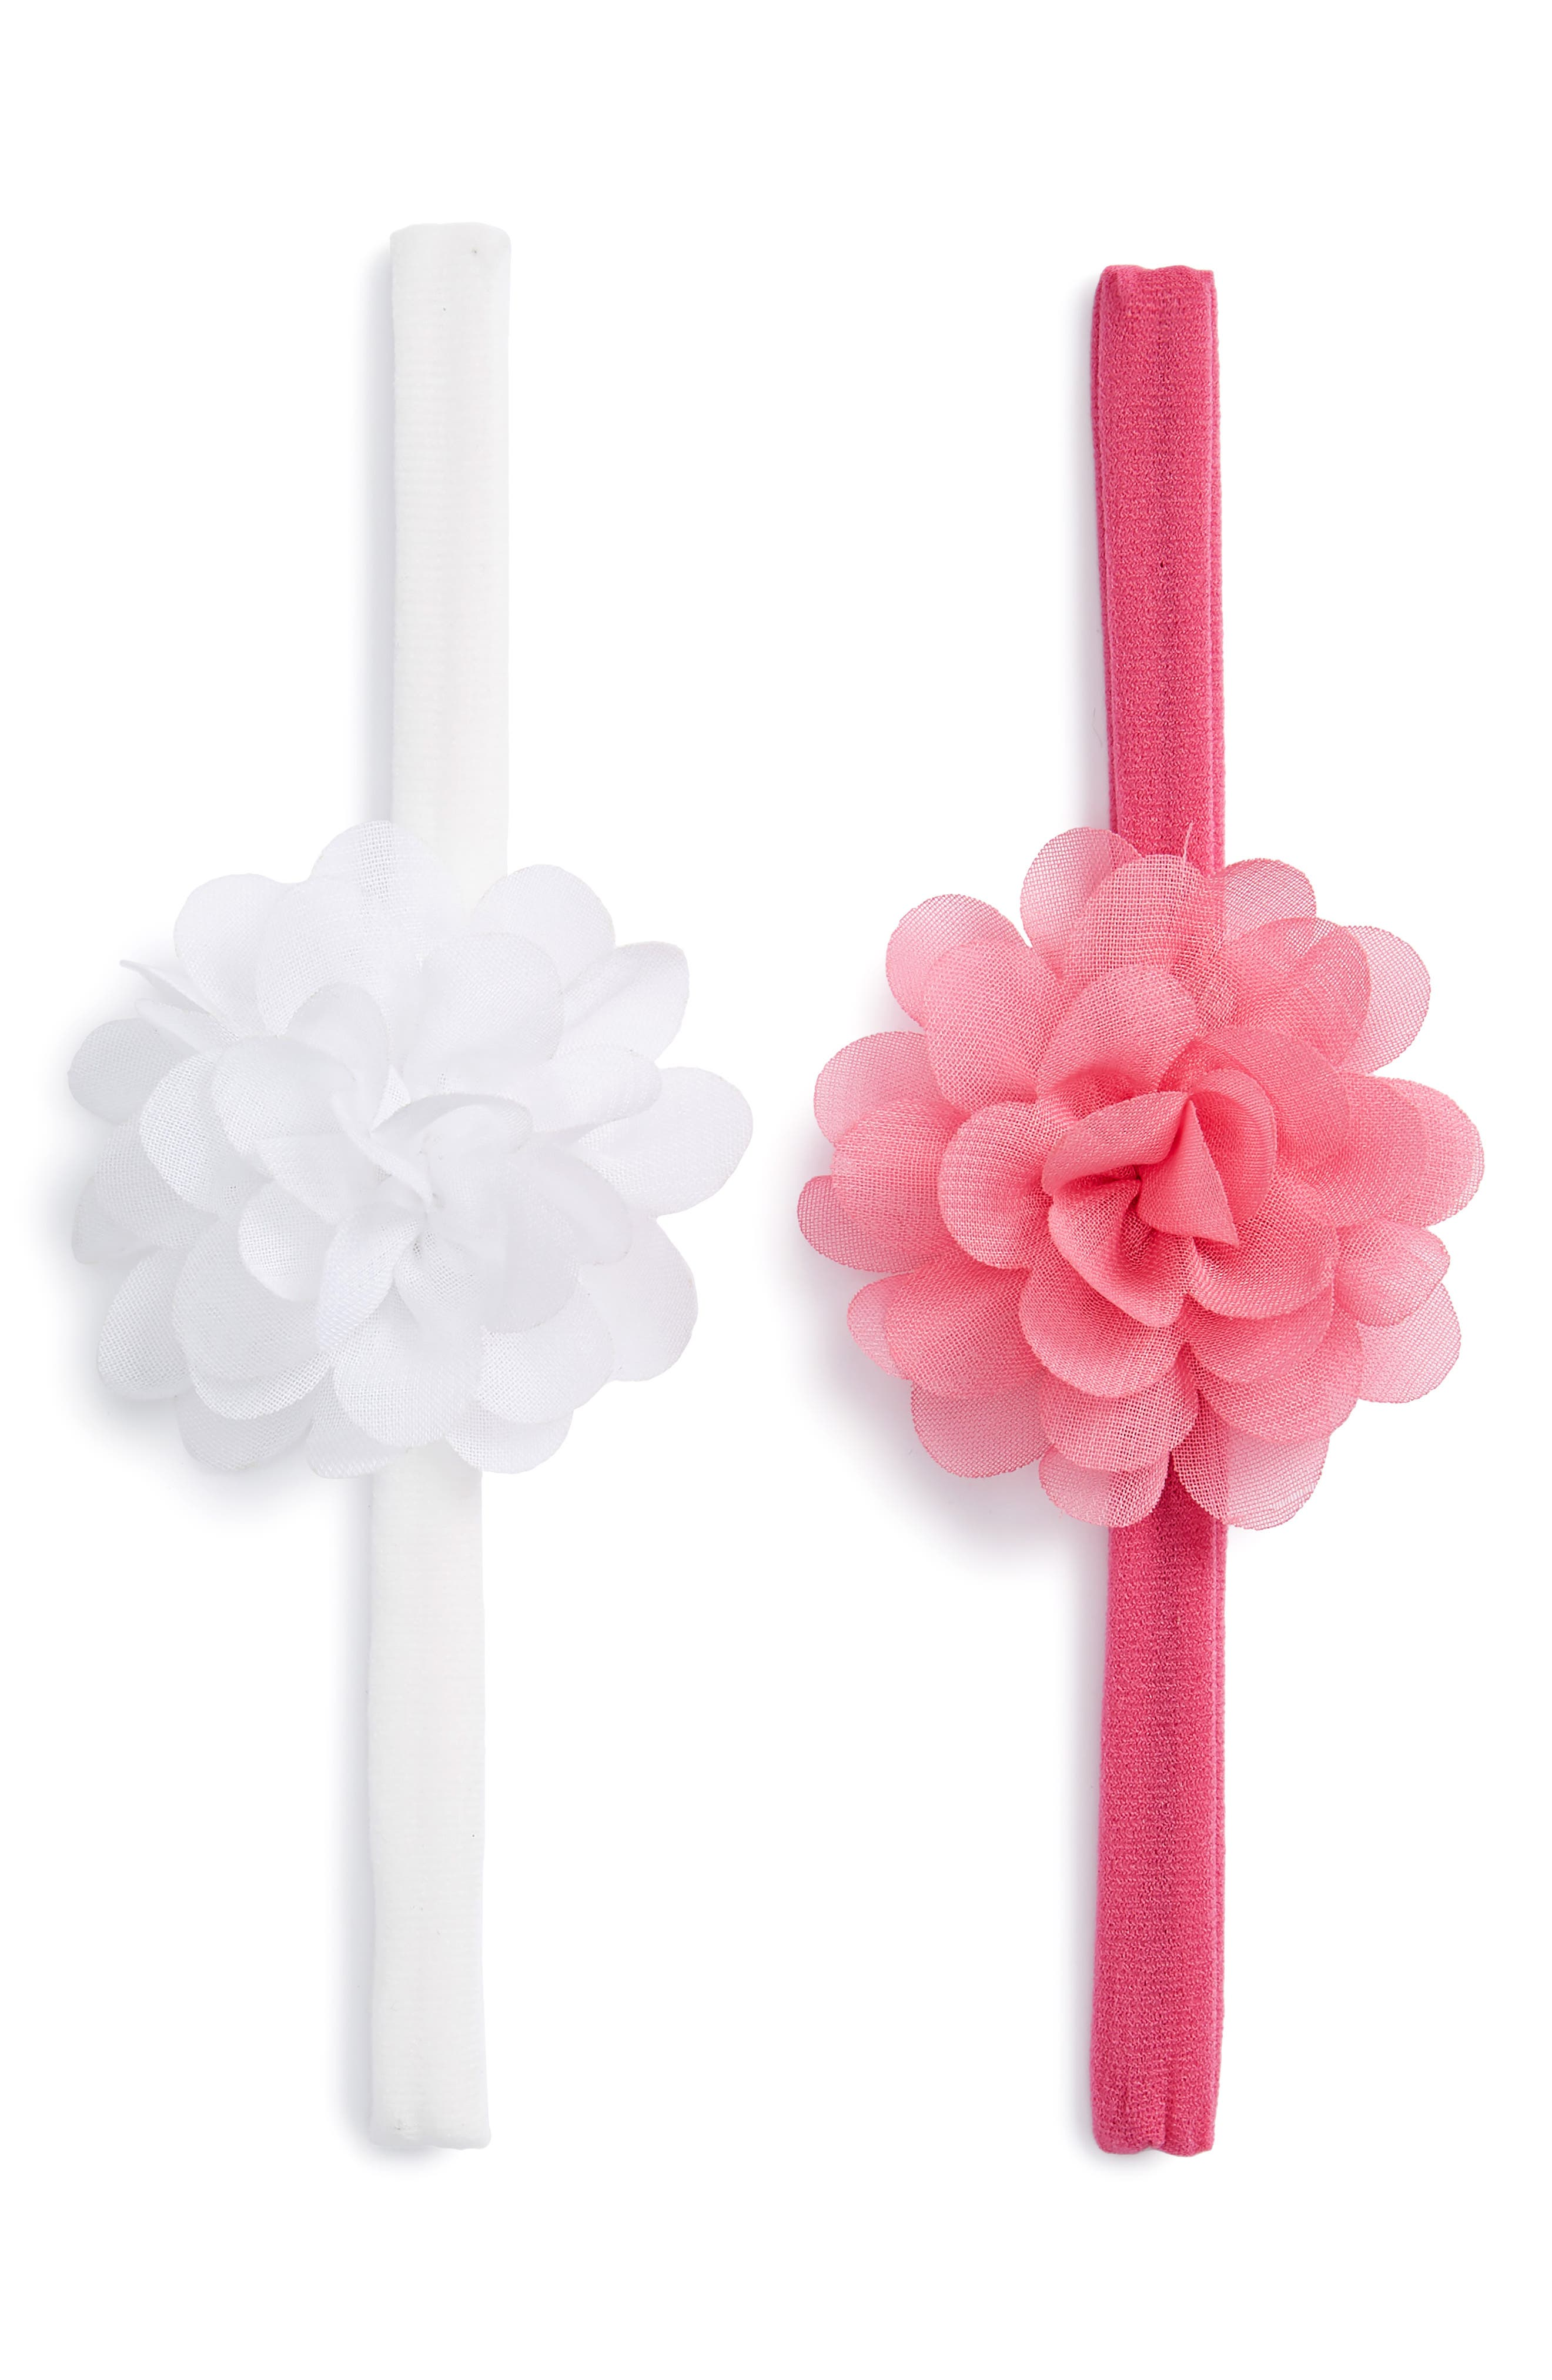 Set of 2 Mini Flower Headbands,                         Main,                         color, White/ Hot Pink